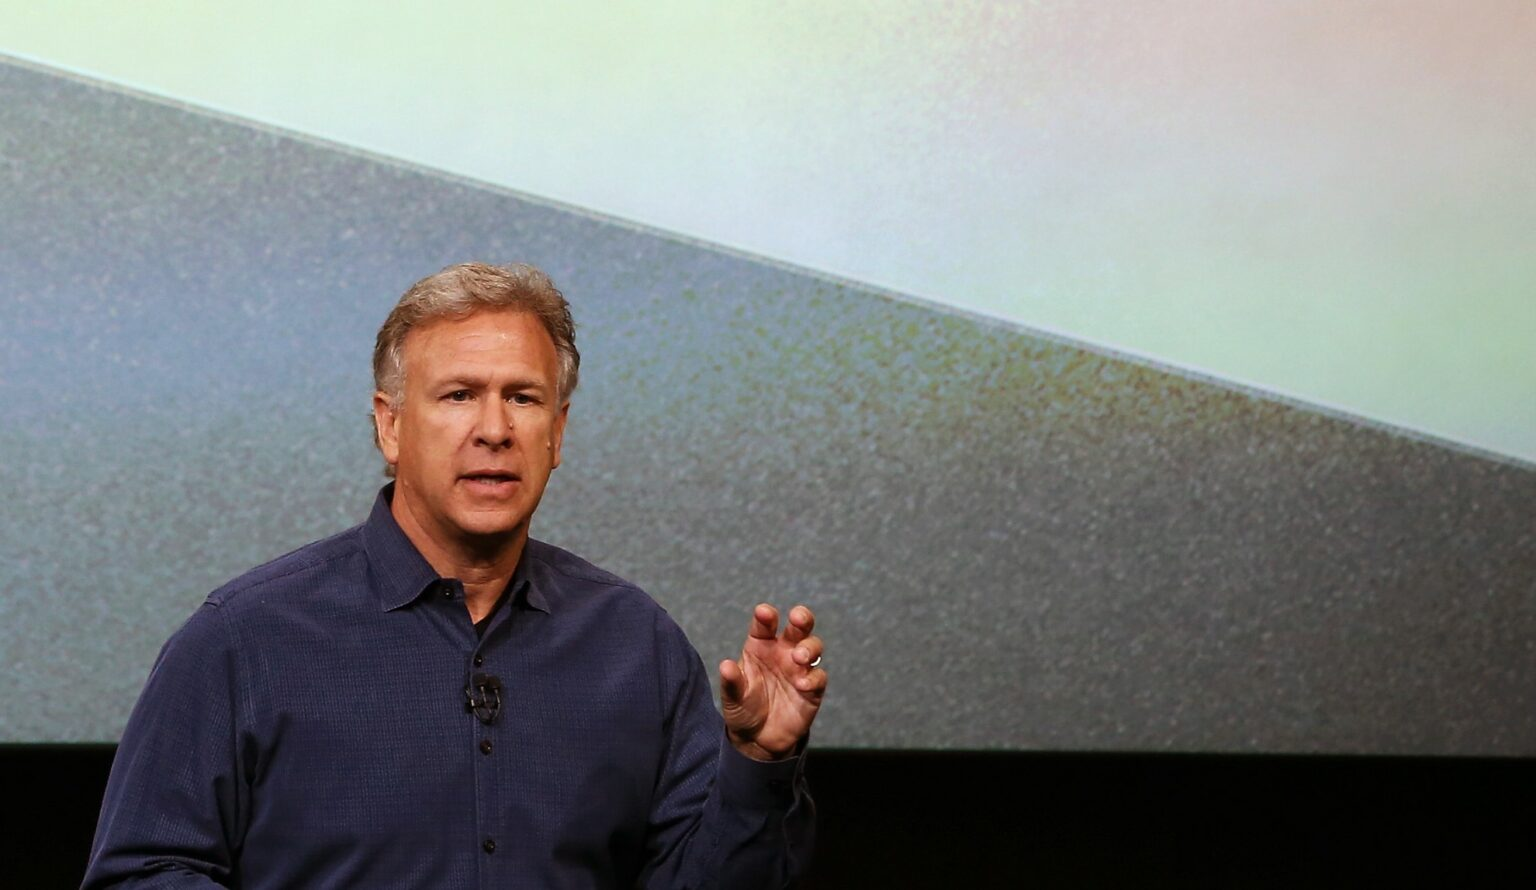 As Phil Schiller steps down from his role as Apple's SVP of worldwide marketing, it's clear the company won't be the same without him.